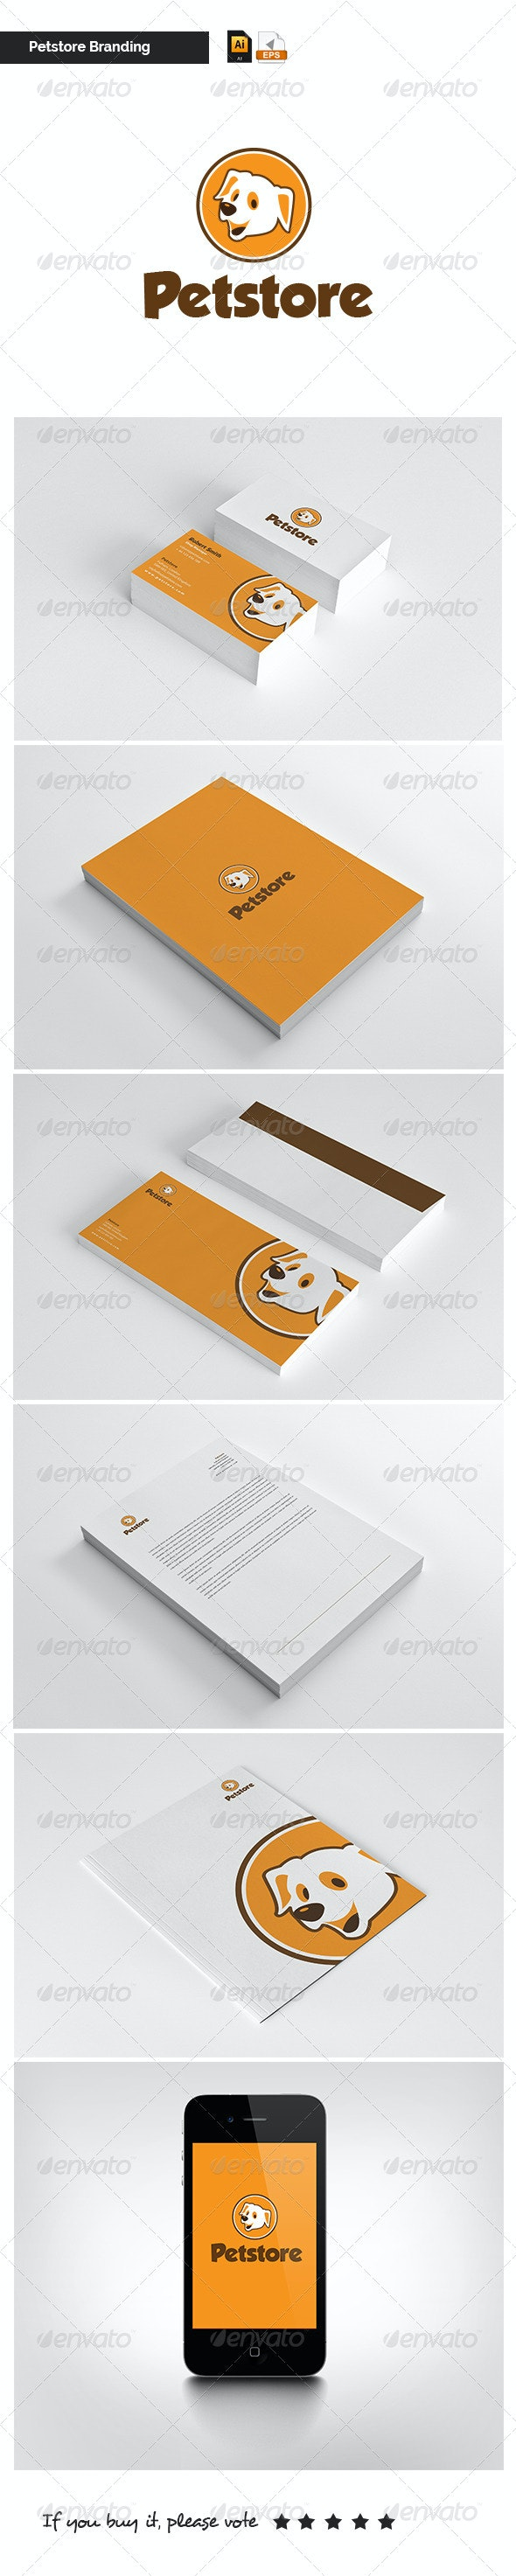 Modern Stationary - Petstore - Stationery Print Templates